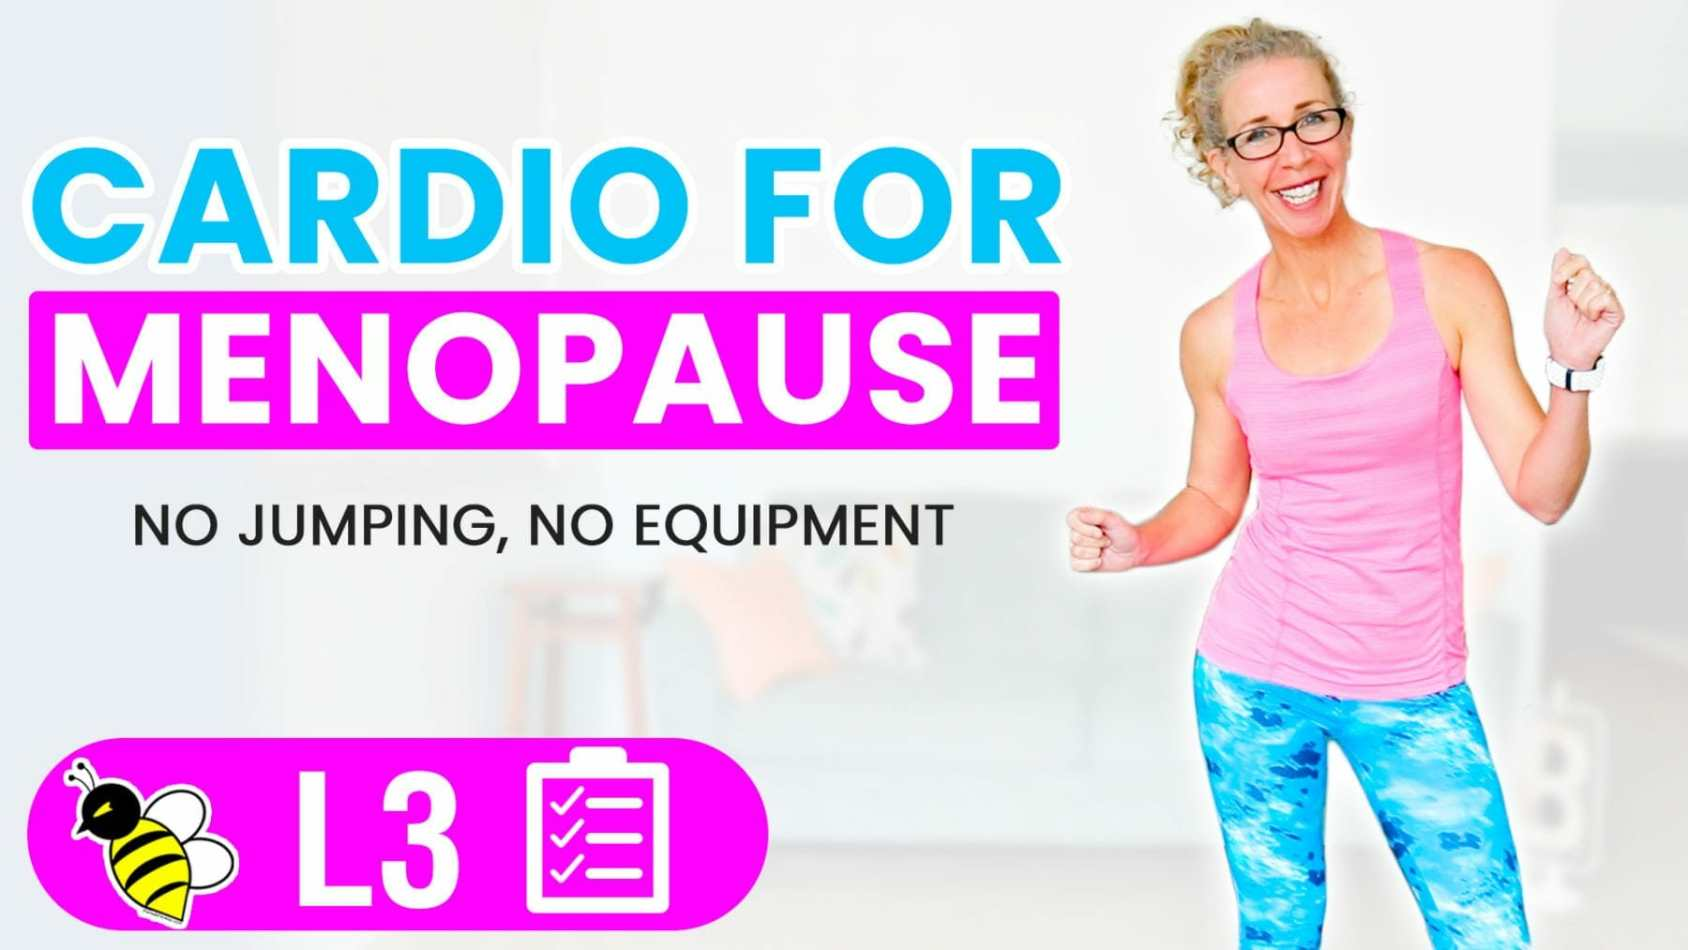 25 Minute LOW IMPACT Cardio for Menopause Workout